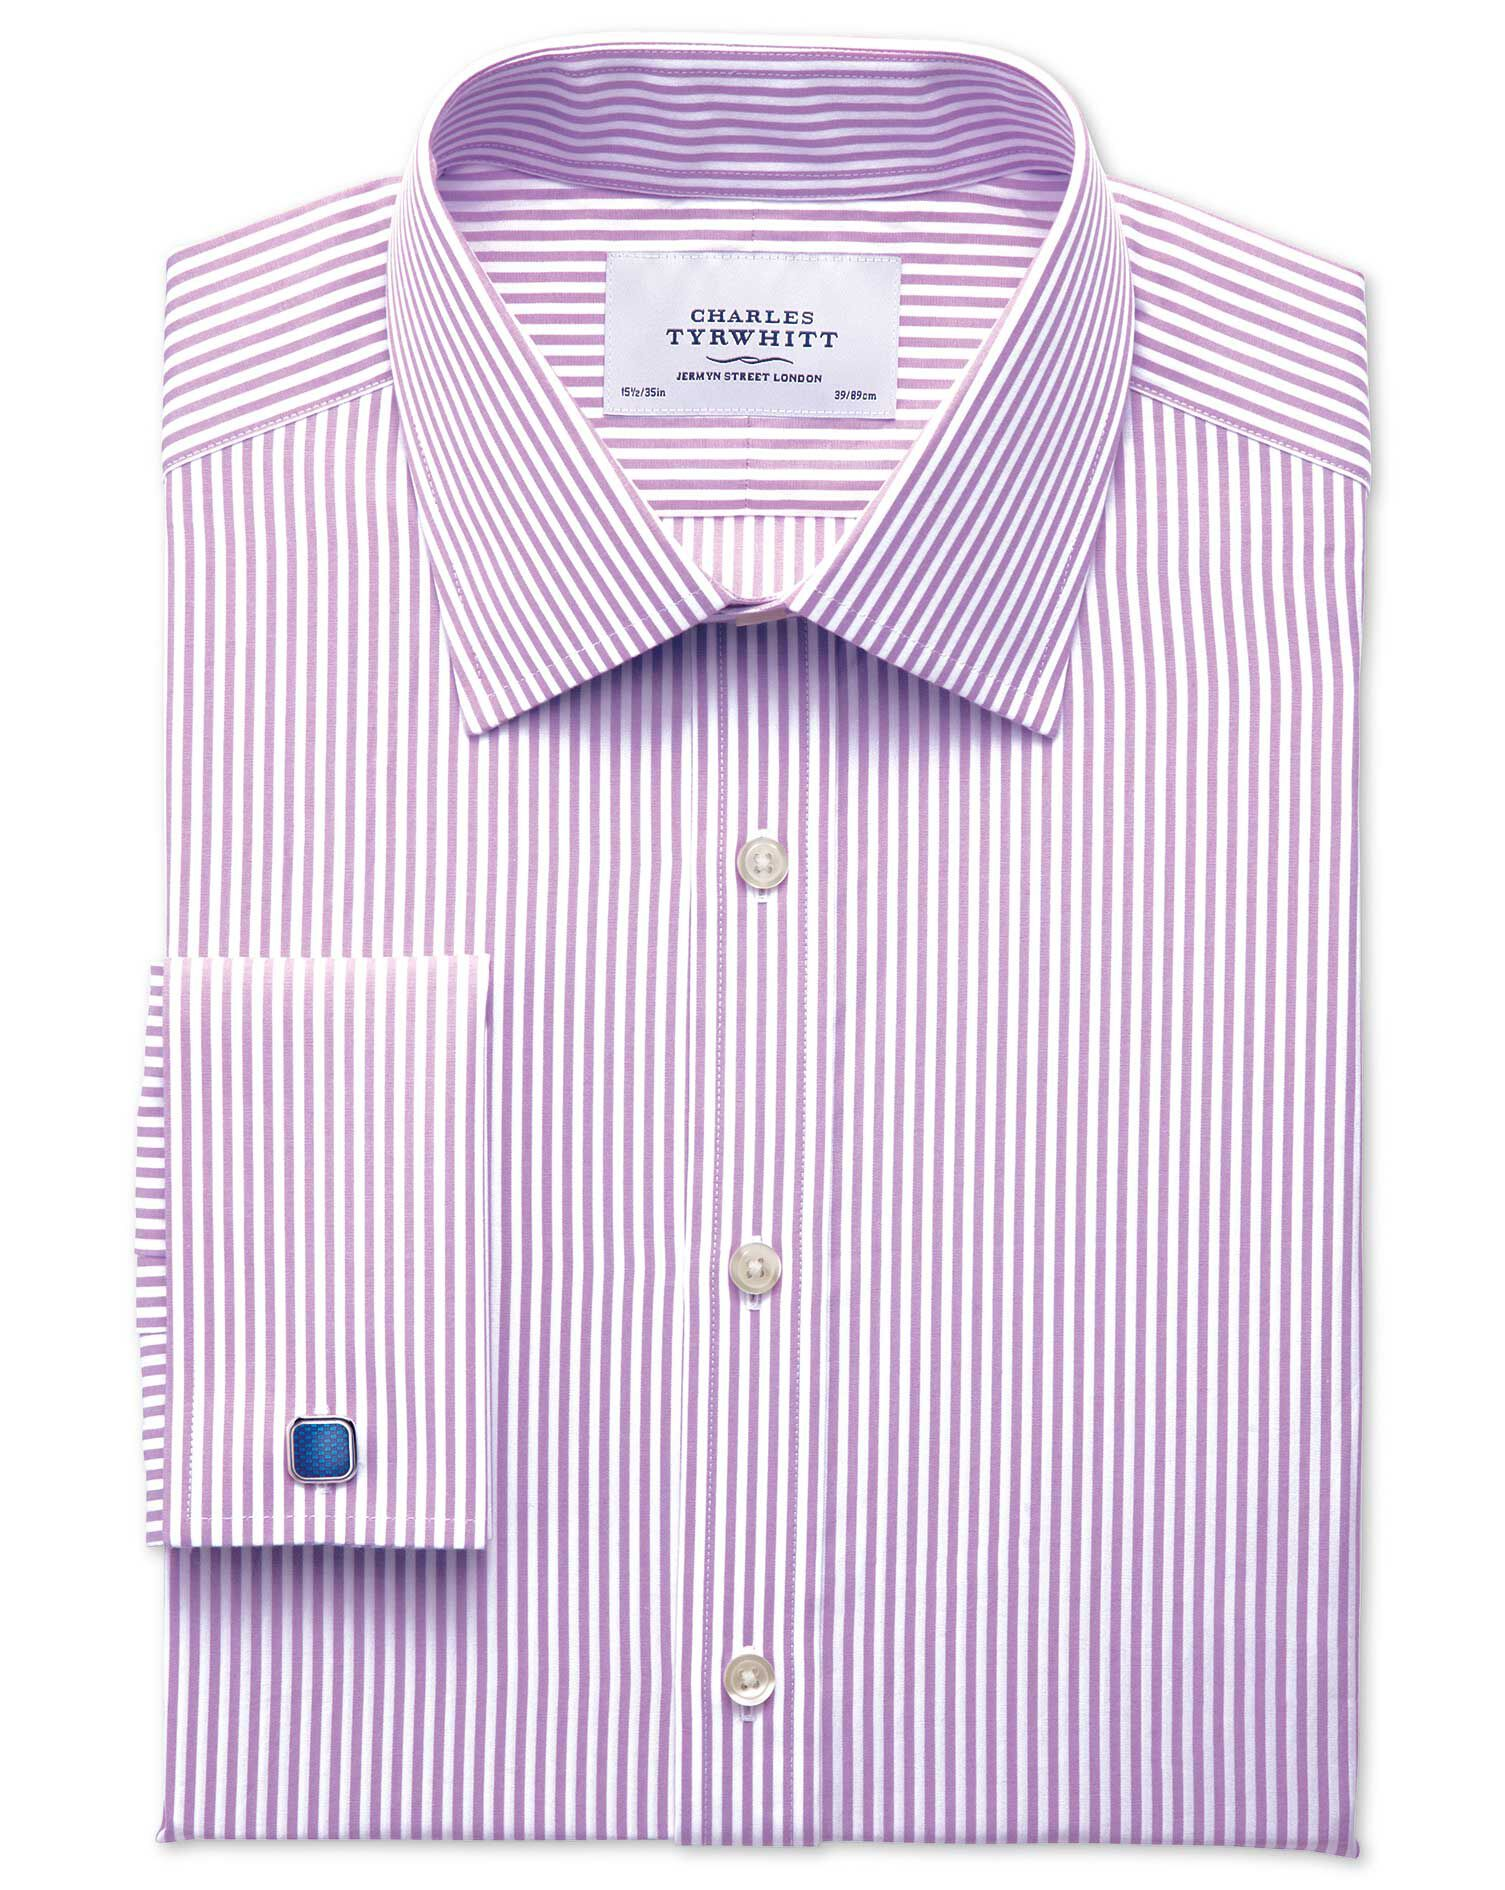 Extra Slim Fit Bengal Stripe Lilac Cotton Formal Shirt Single Cuff Size 15/33 by Charles Tyrwhitt